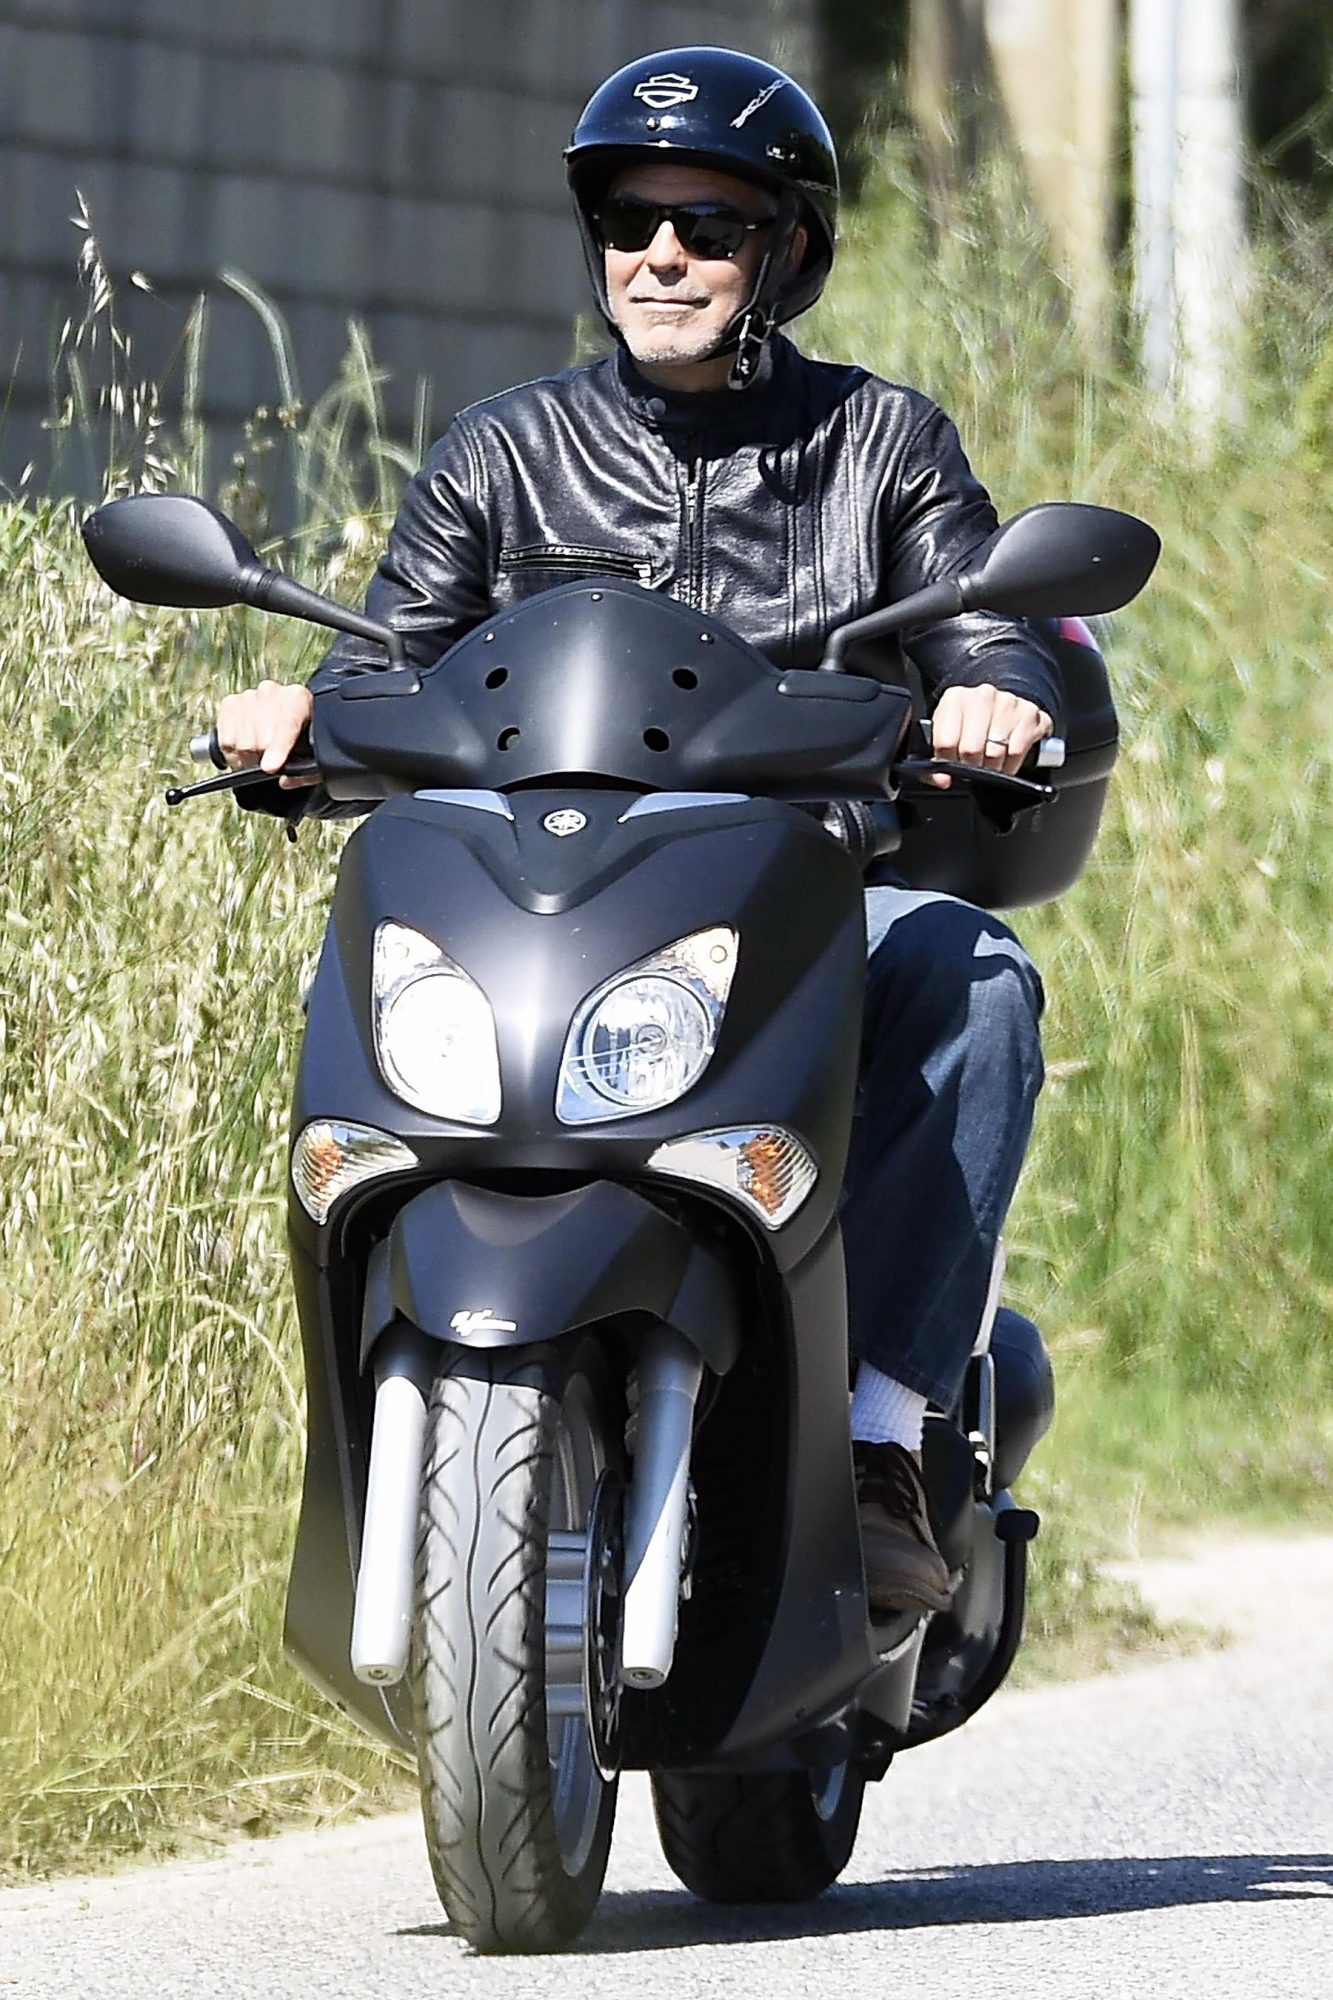 George Clooney cruises the town of Sardinia on a scooter